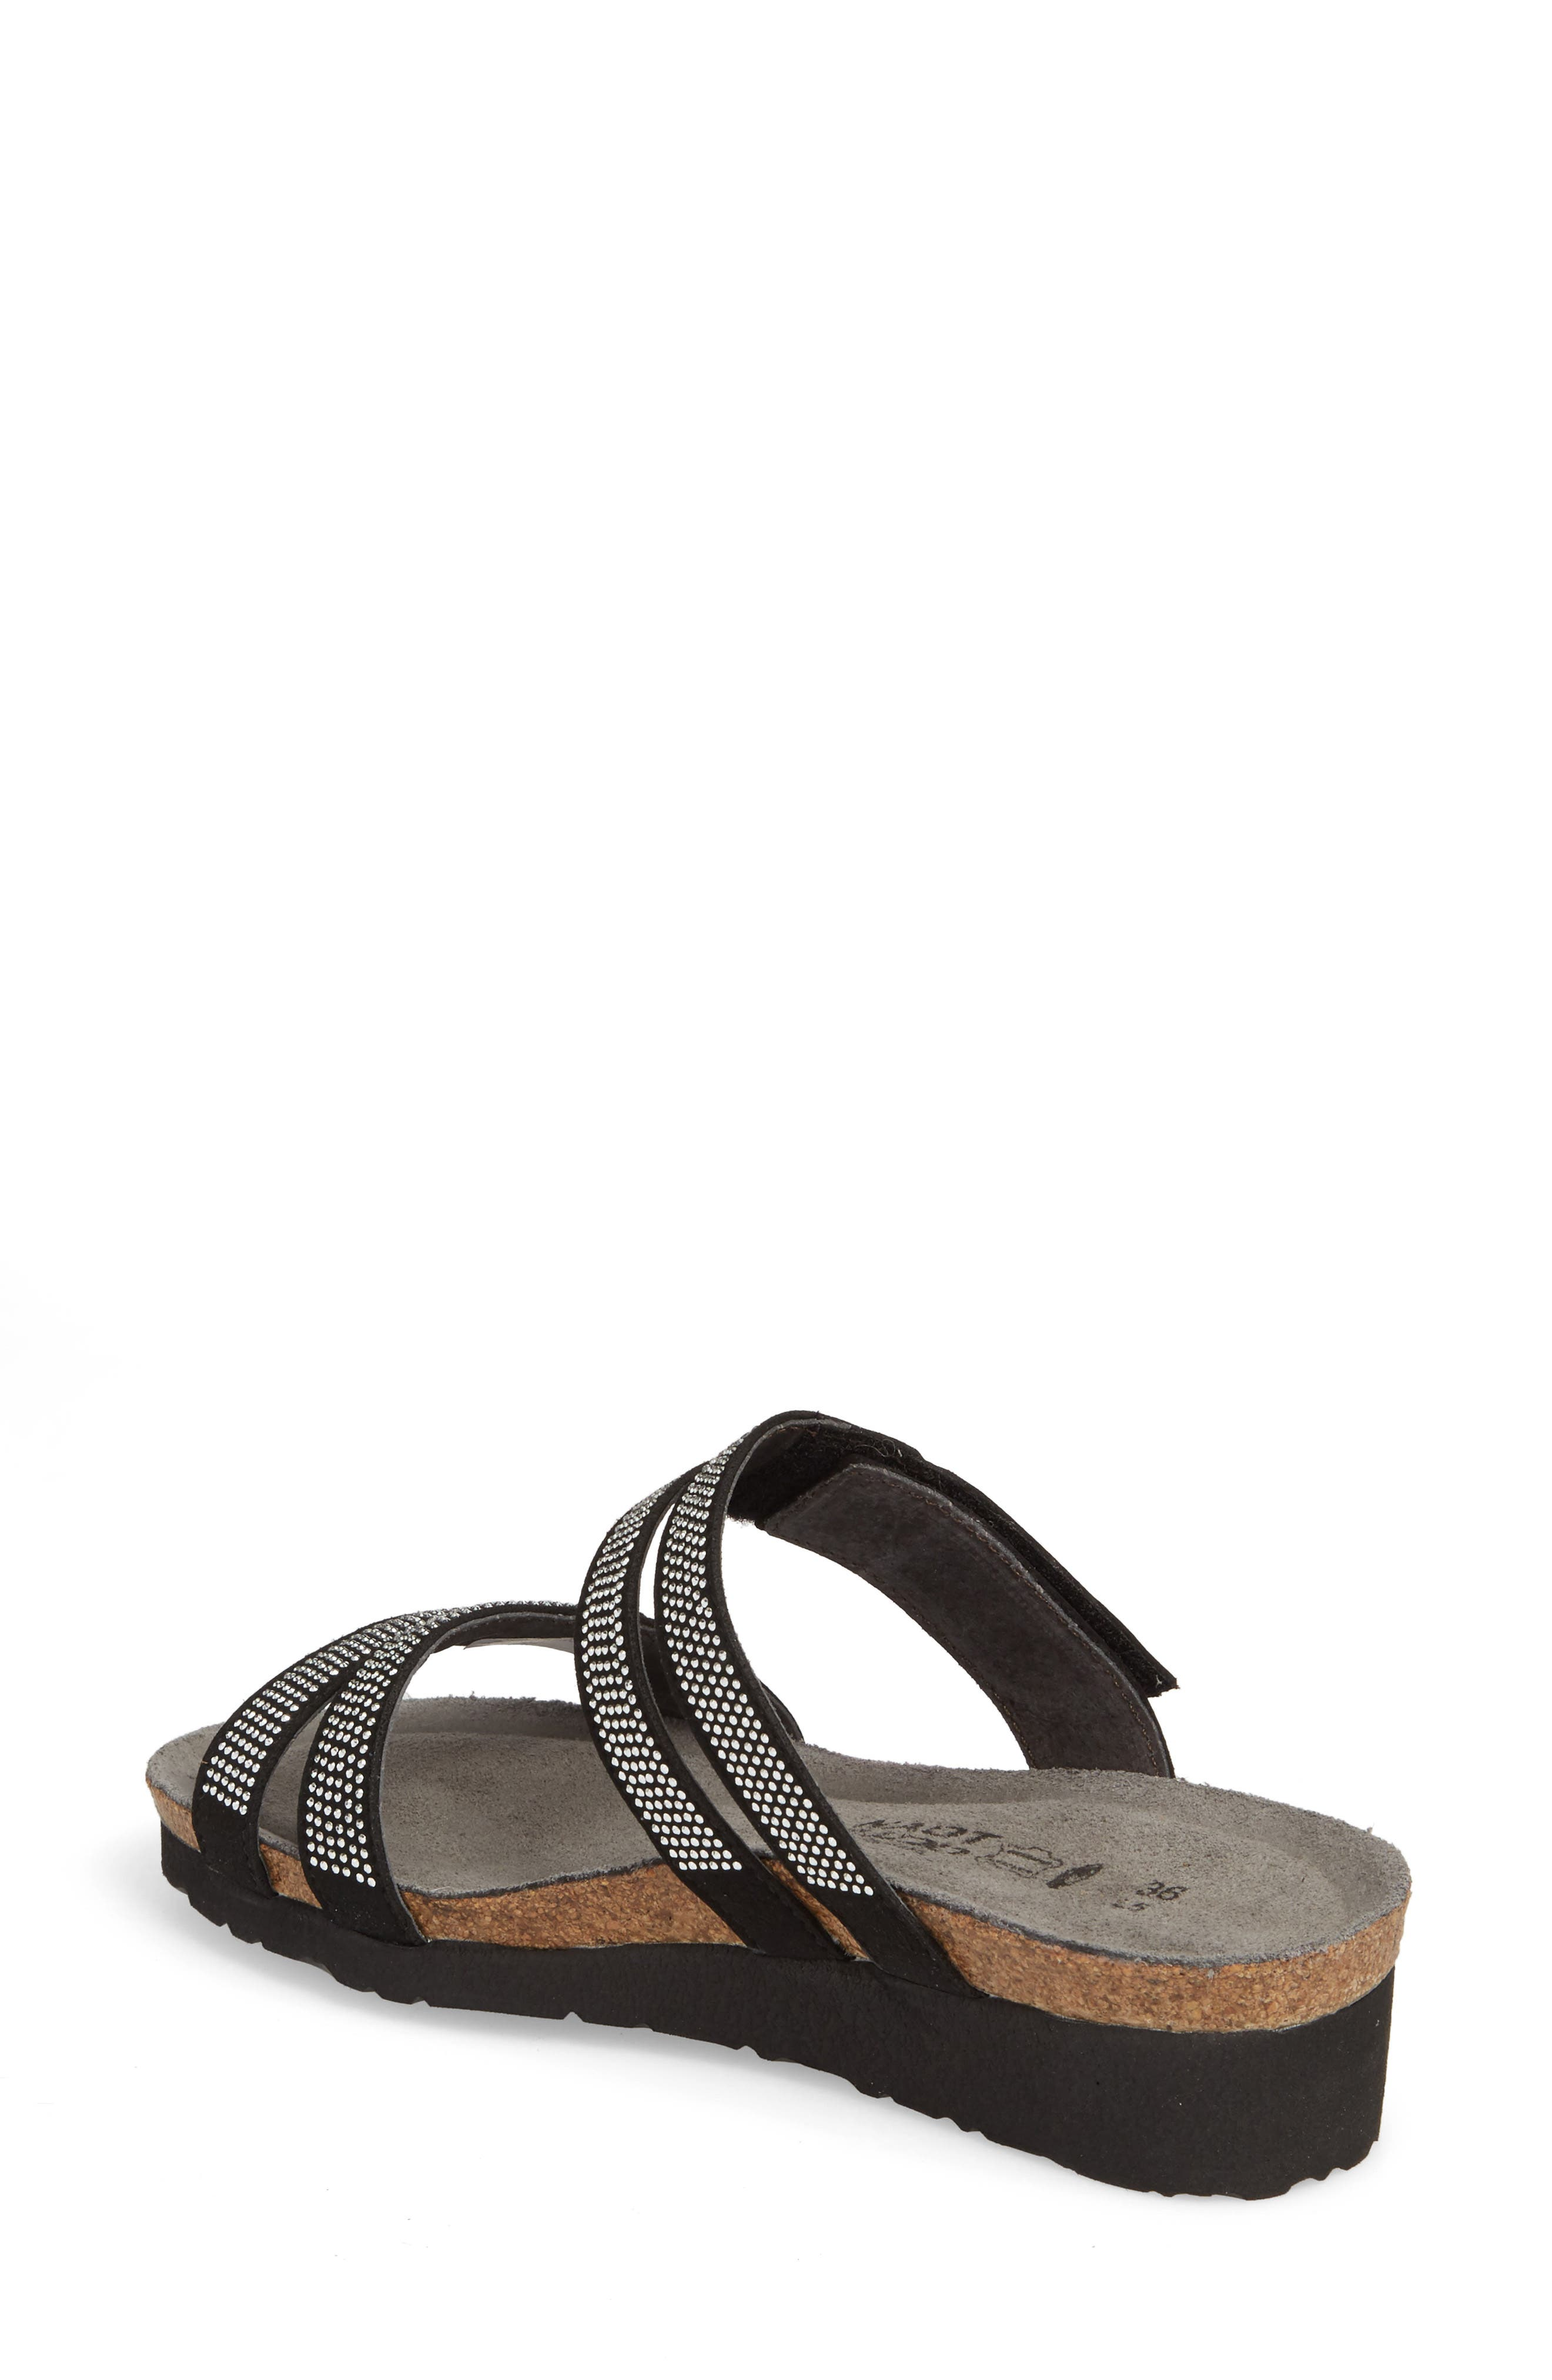 Ainsley Studded Slide Sandal,                             Alternate thumbnail 2, color,                             BLACK NUBUCK